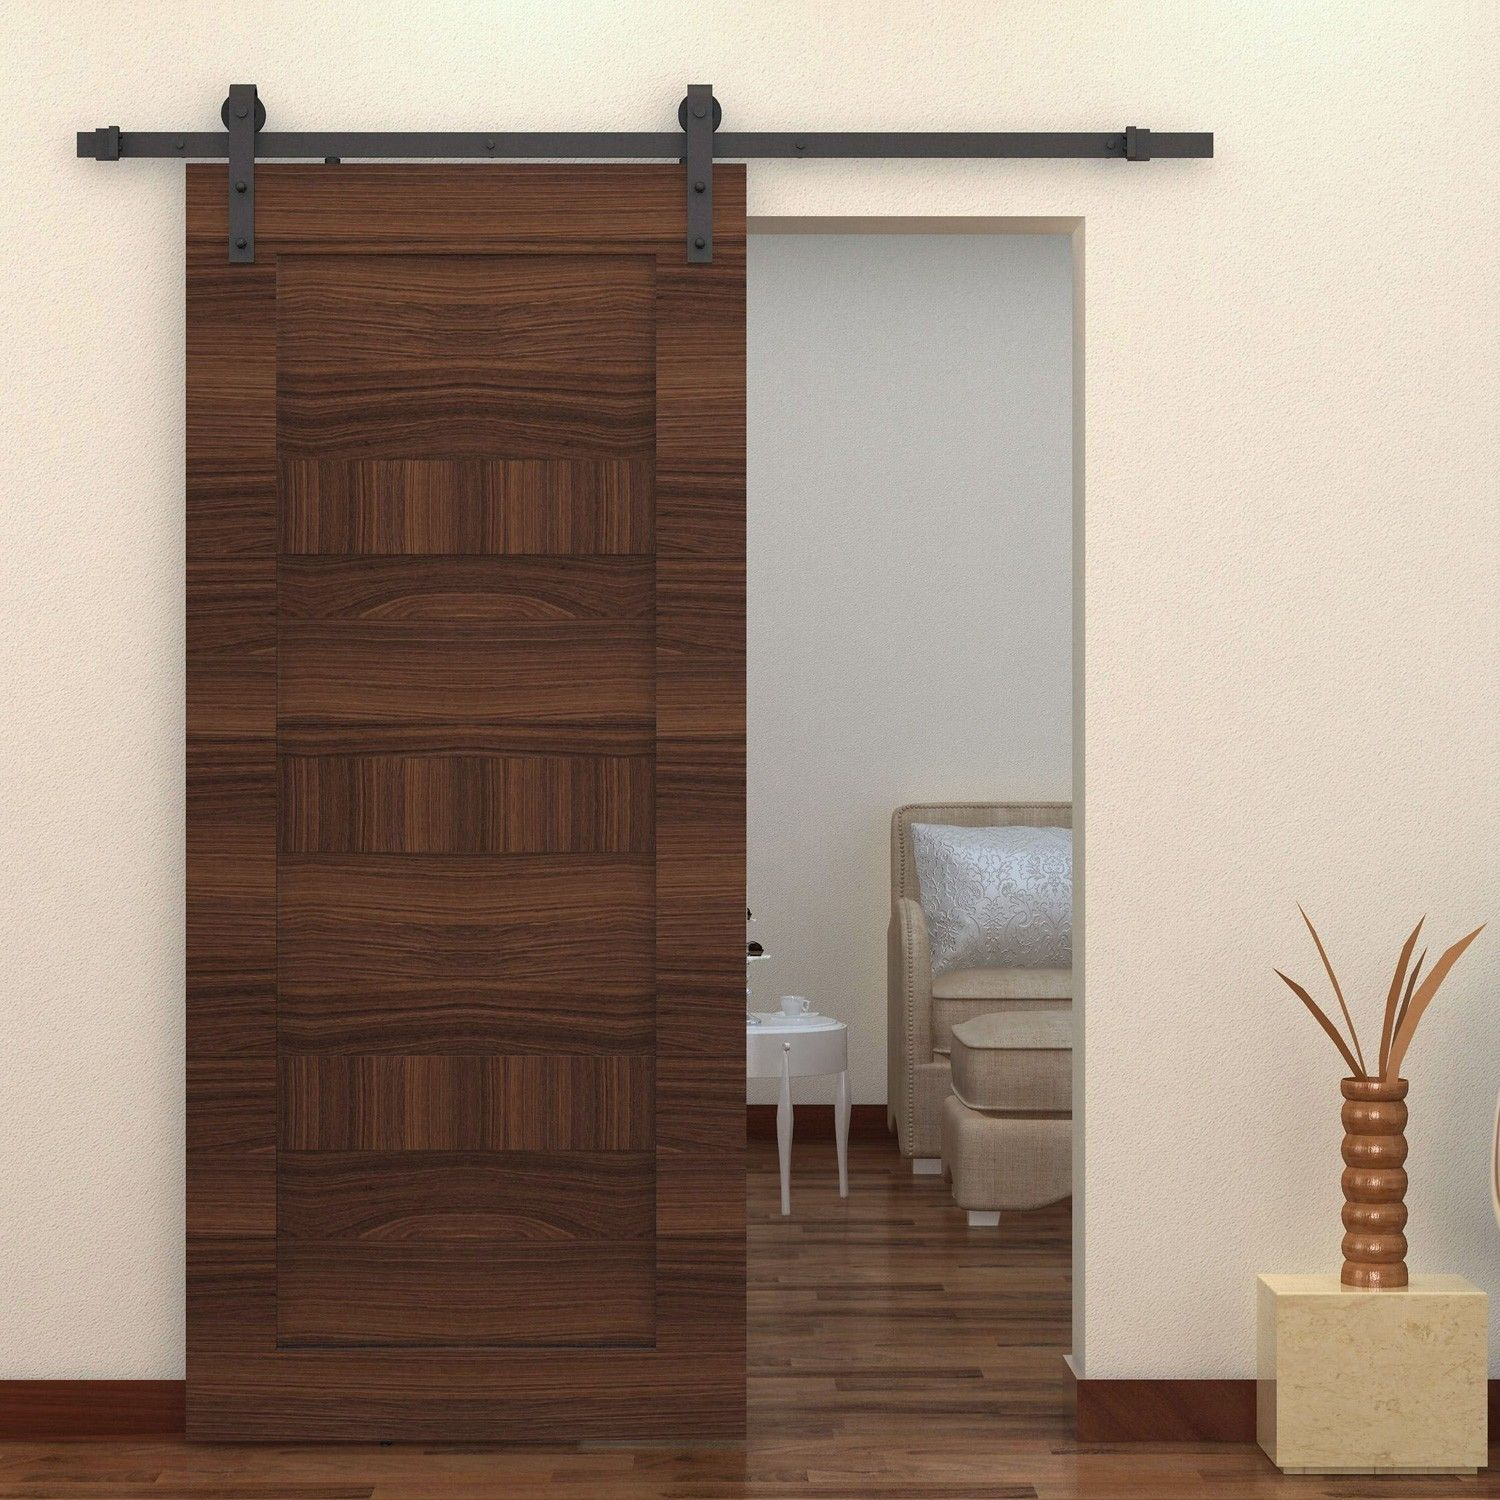 20 interior sliding barn doors designs - Barn door patterns ...